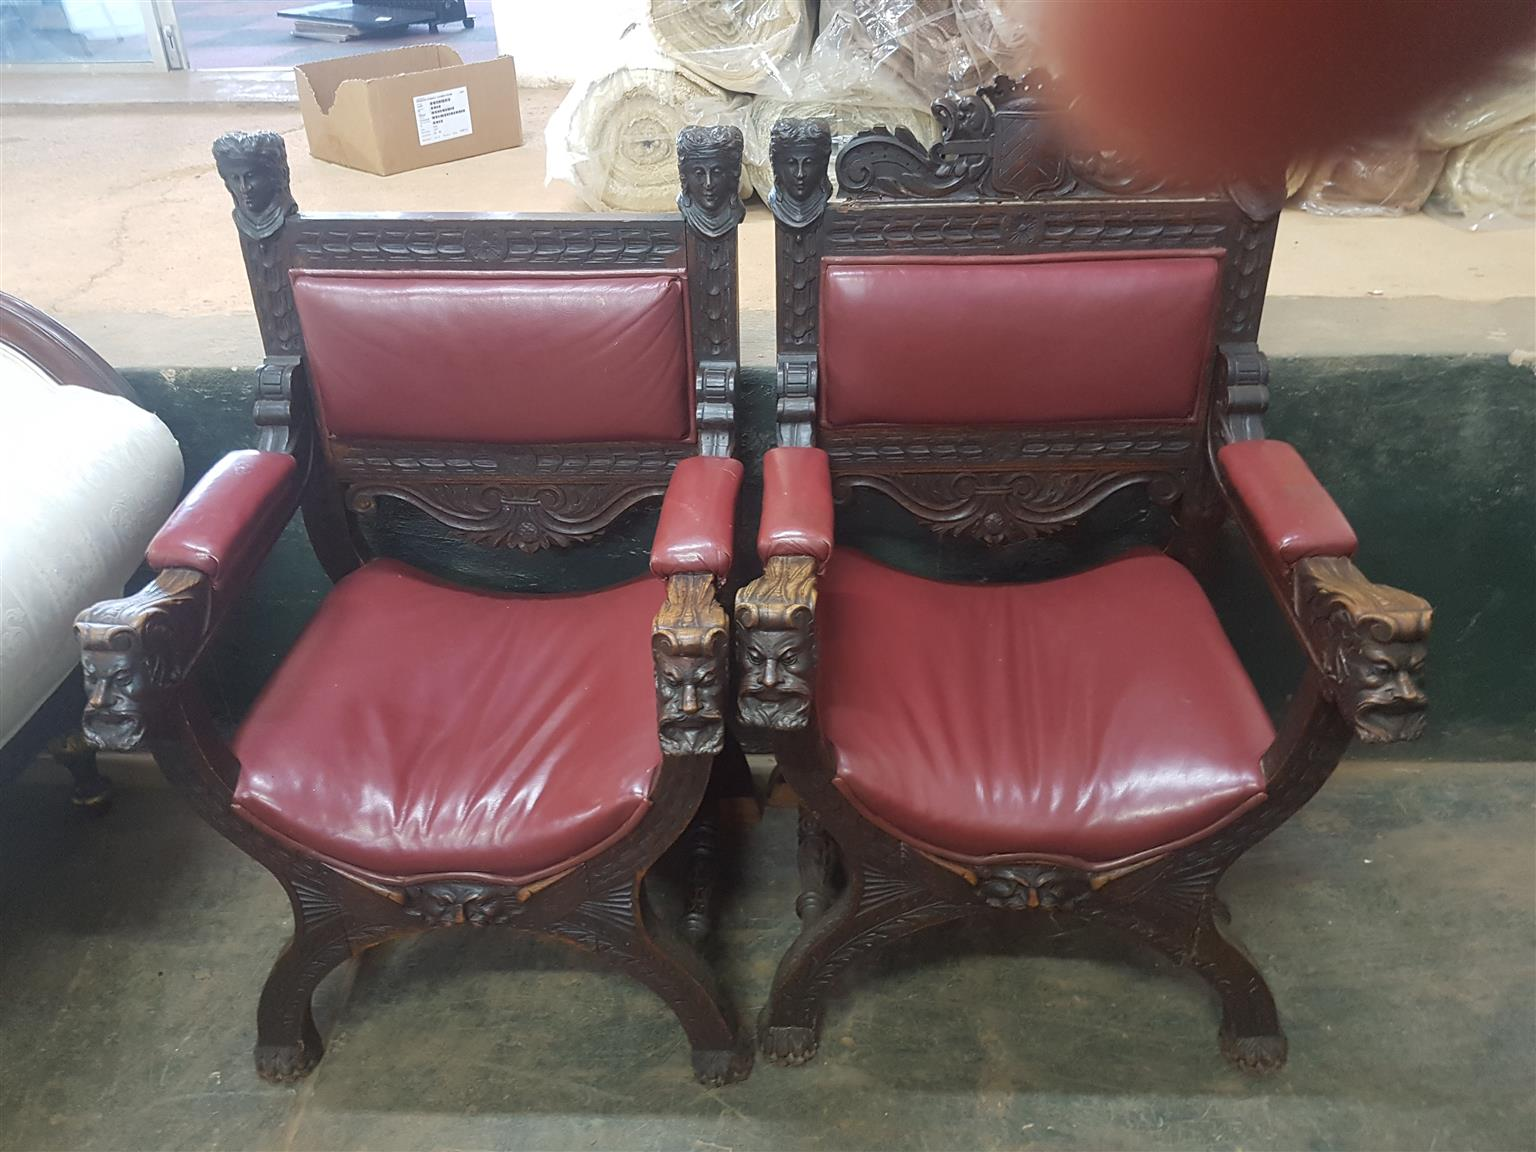 Antique King & Queen Chairs - Antique King & Queen Chairs Junk Mail